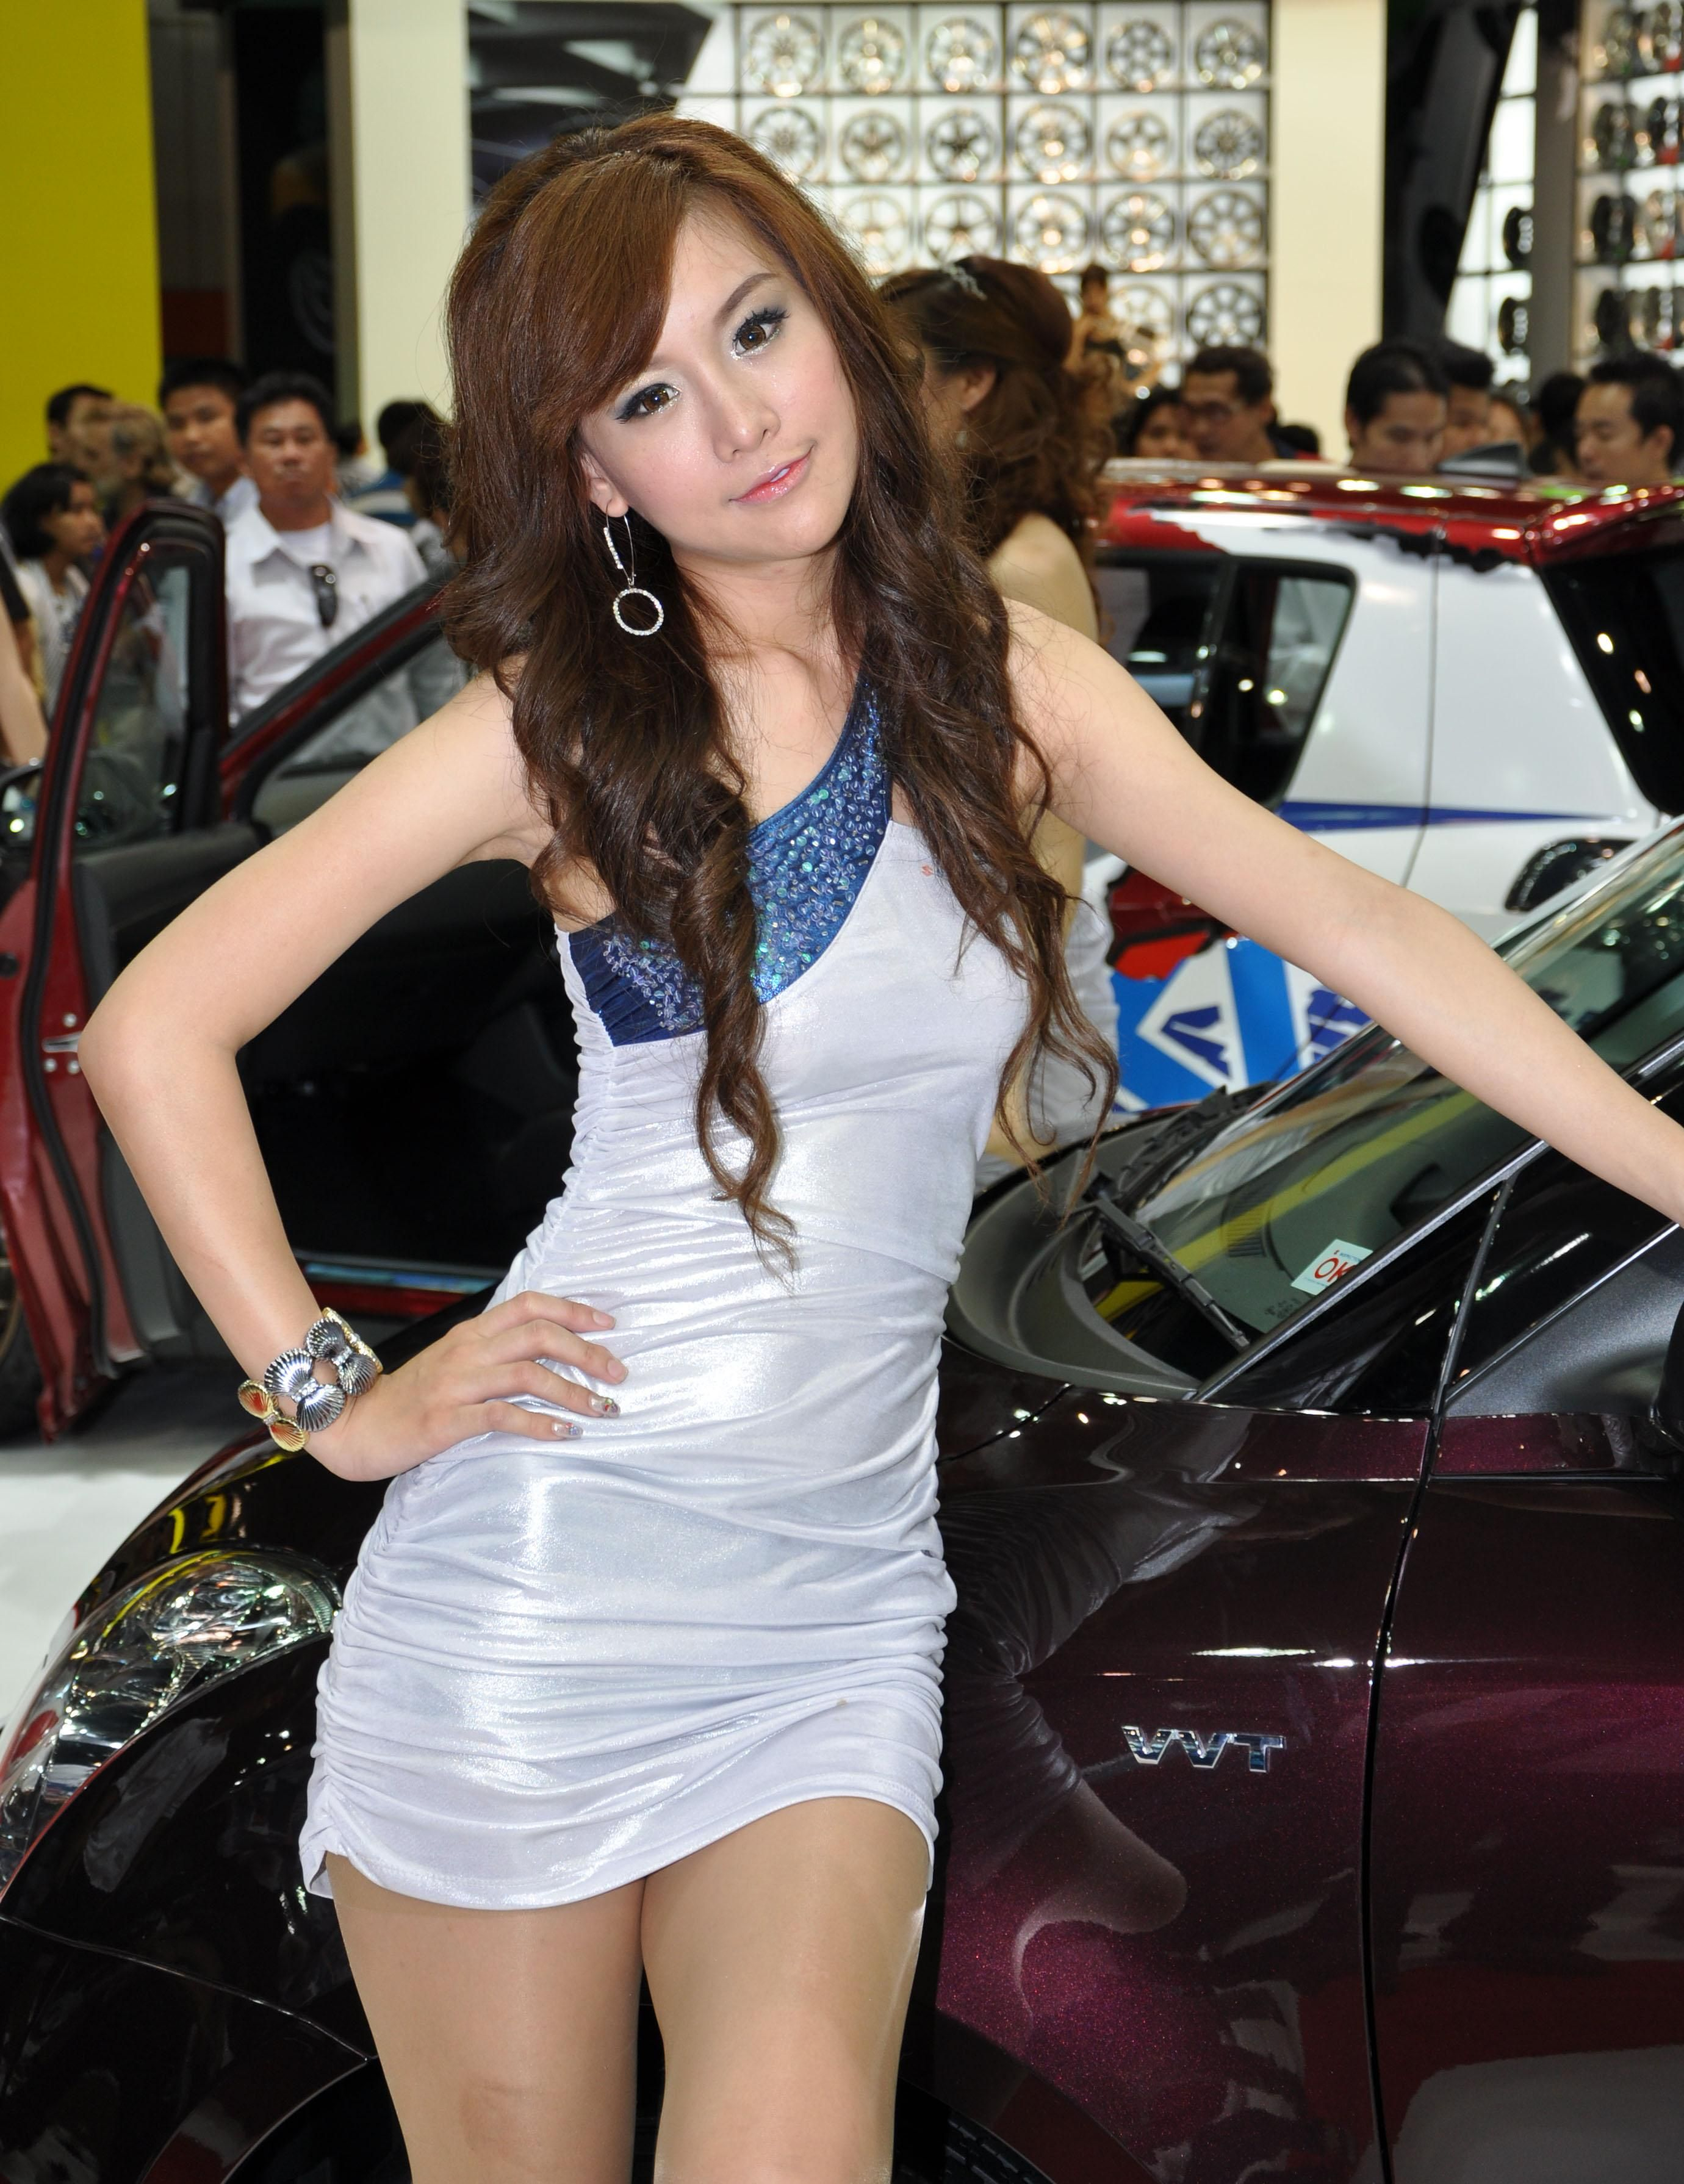 trany-sex-asian-car-show-models-flirting-penguins